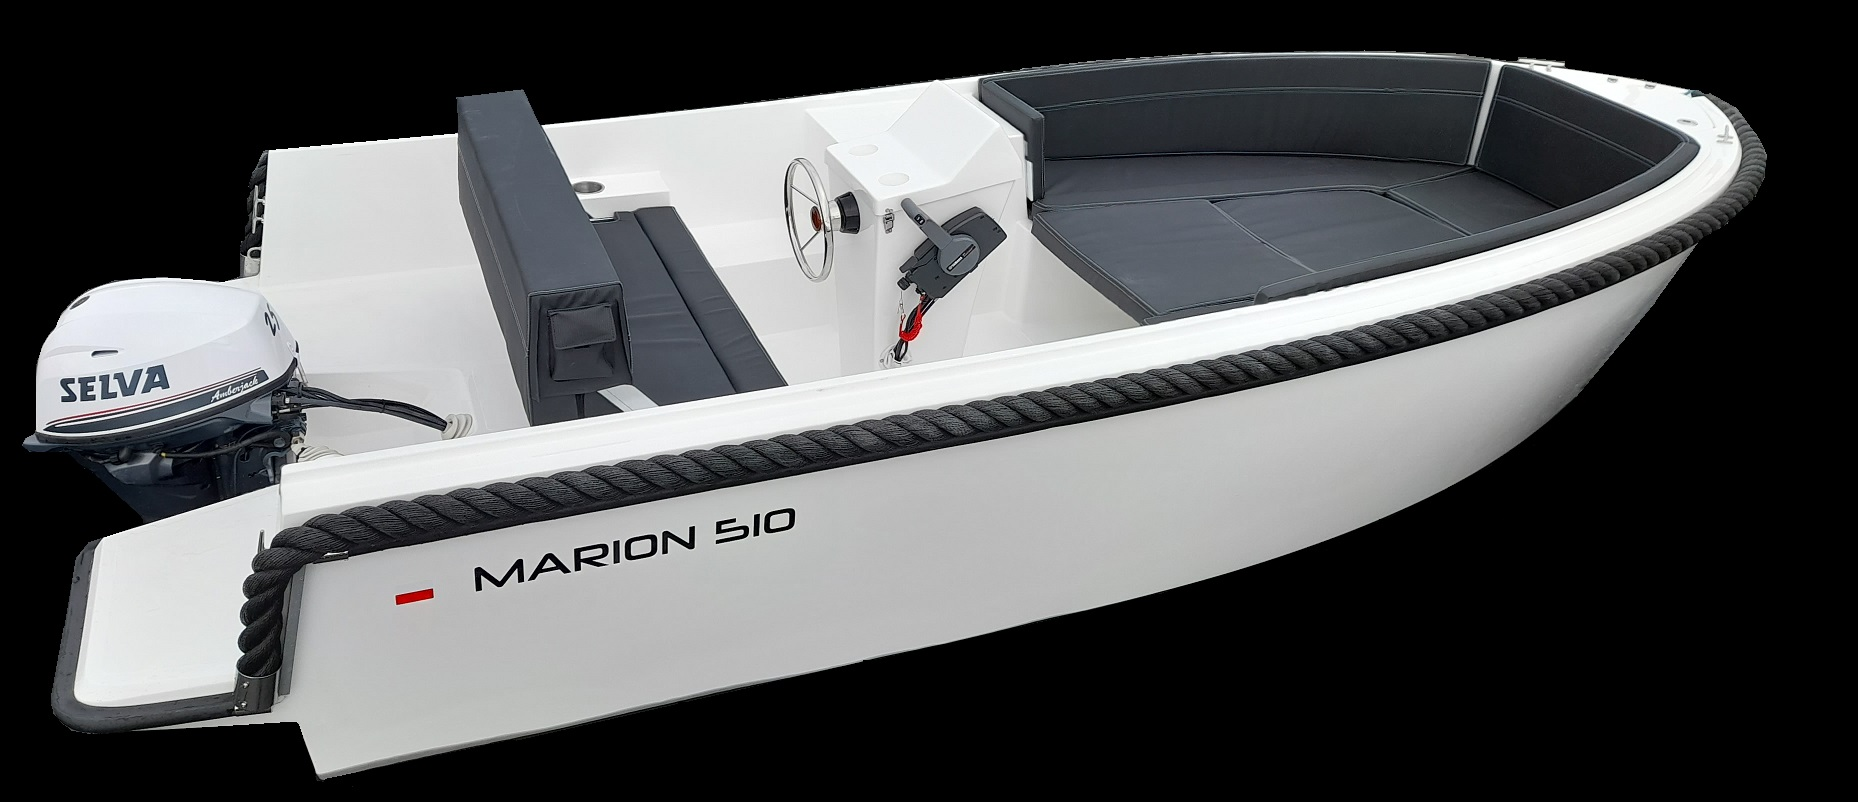 MARION 510